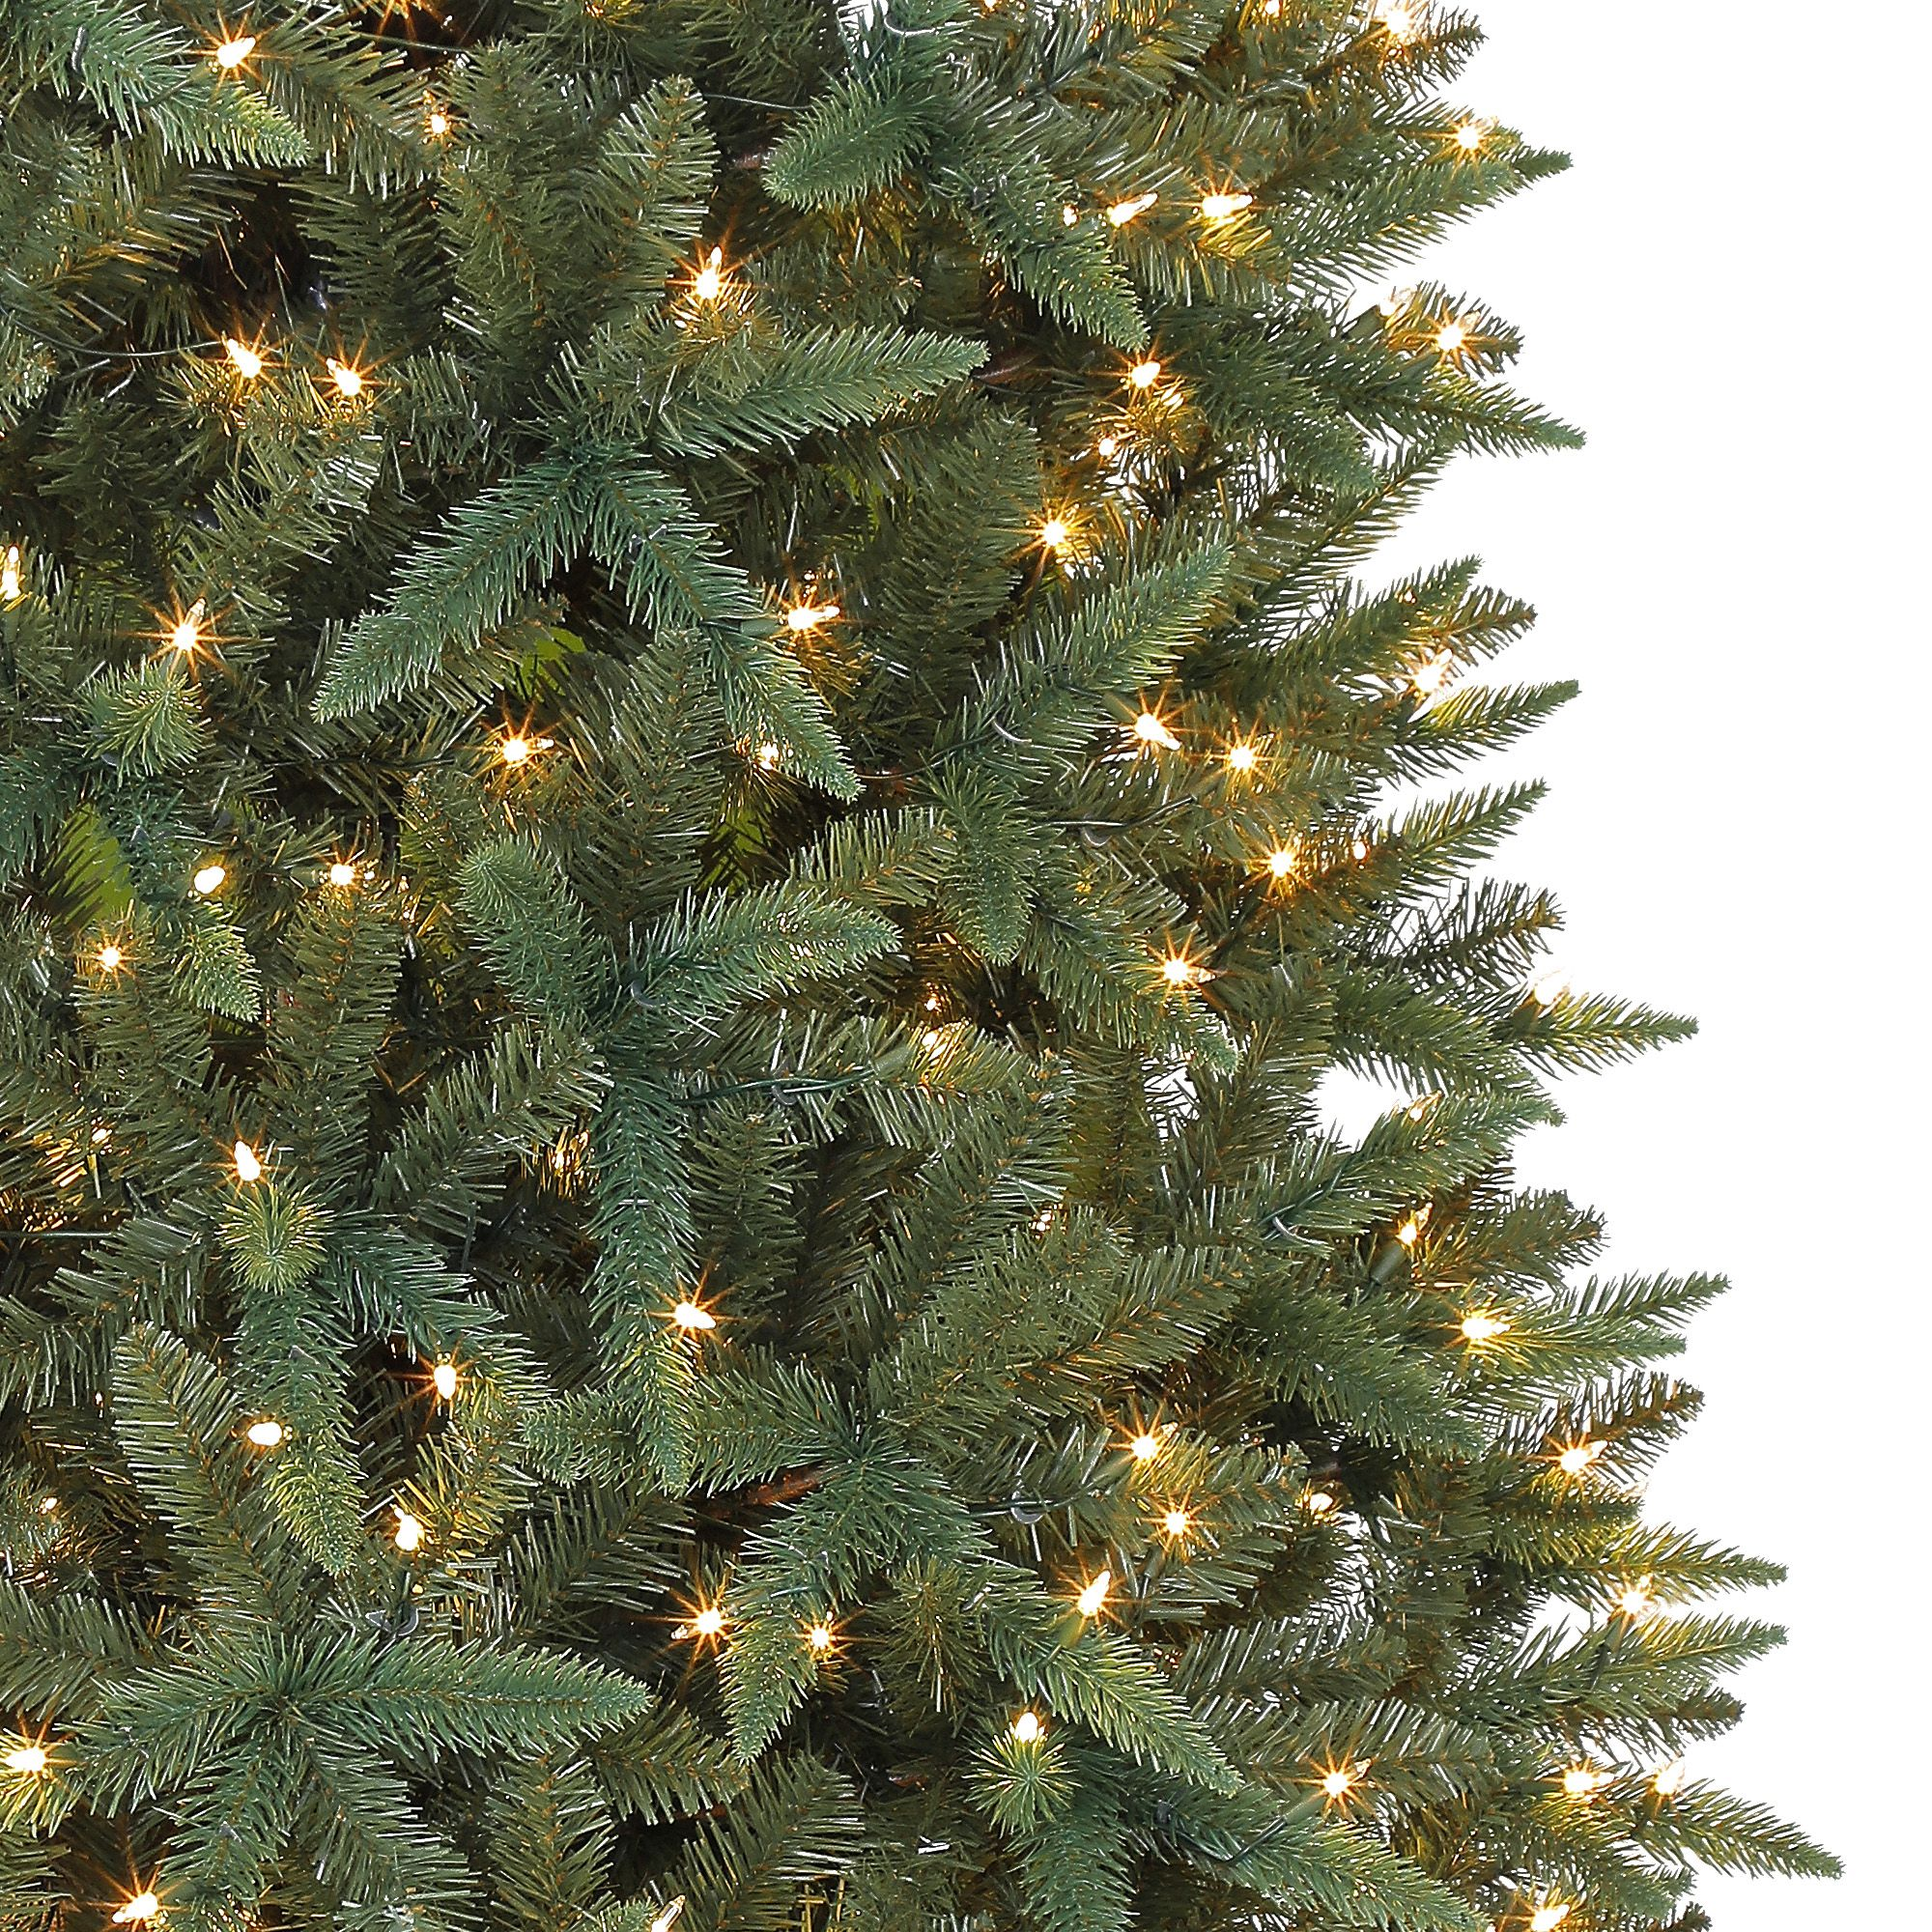 Holiday Time 12ft Pre Lit Williams Pine Artificial Christmas Tree With 1100 Clear Lights Pre Lit Will Artificial Christmas Tree Christmas Tree Holiday Time